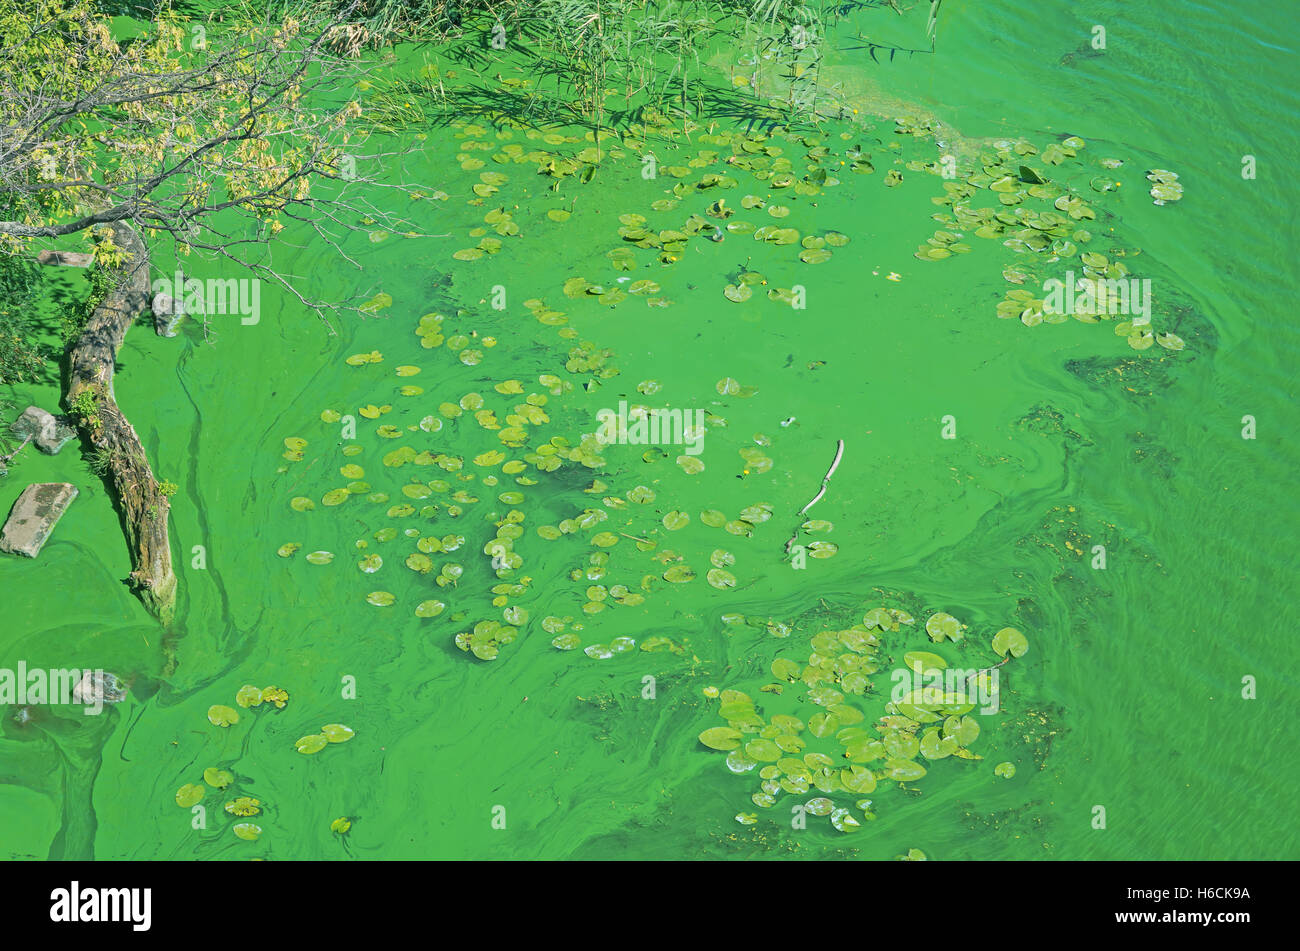 Algae blooms in stagnant backwaters due to emission of phosphates Stock Photo